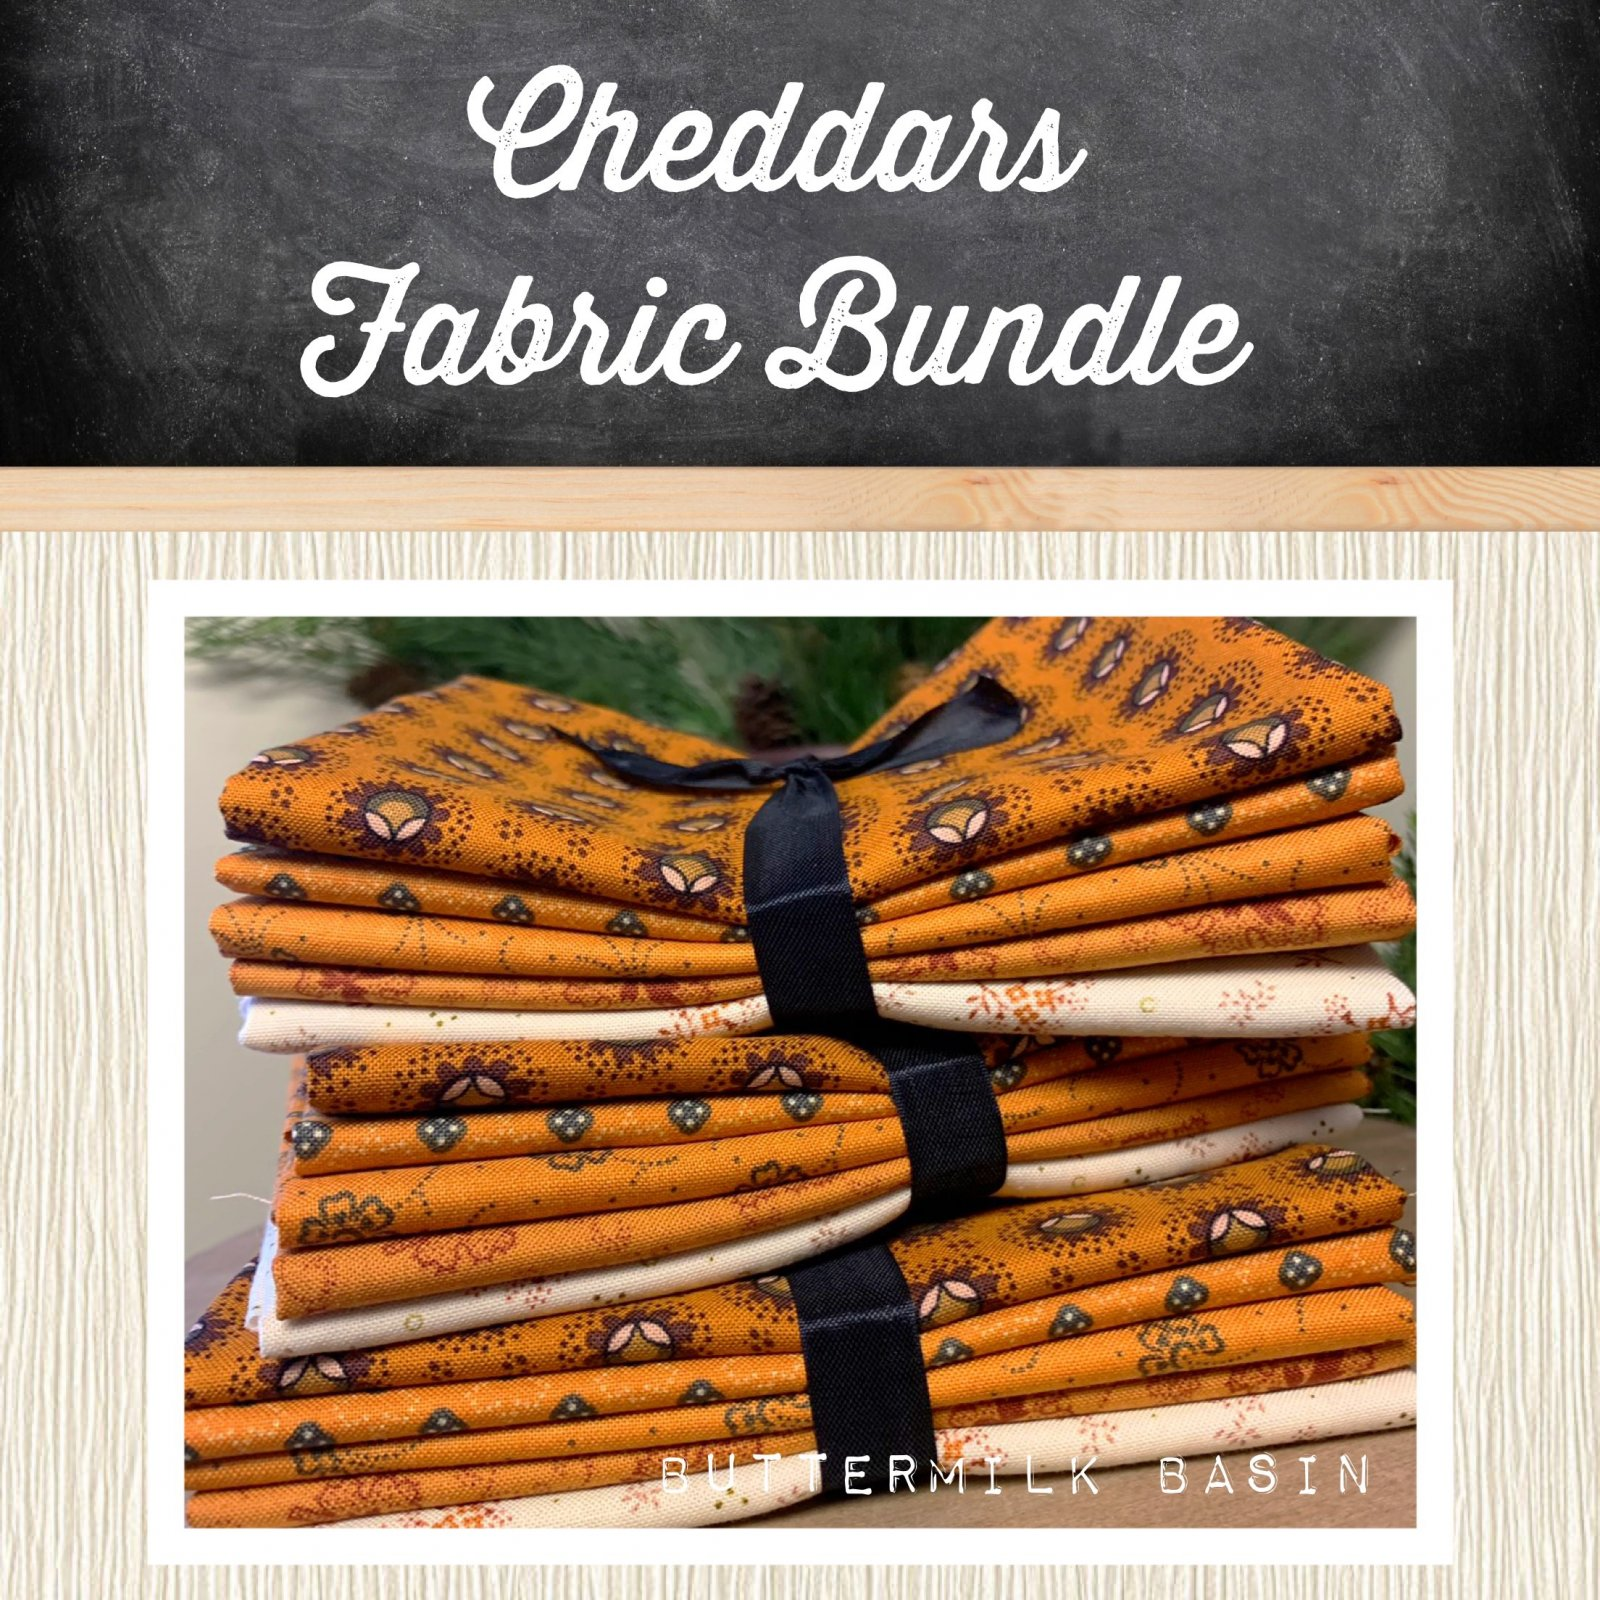 Cheddars Fabric Bundle